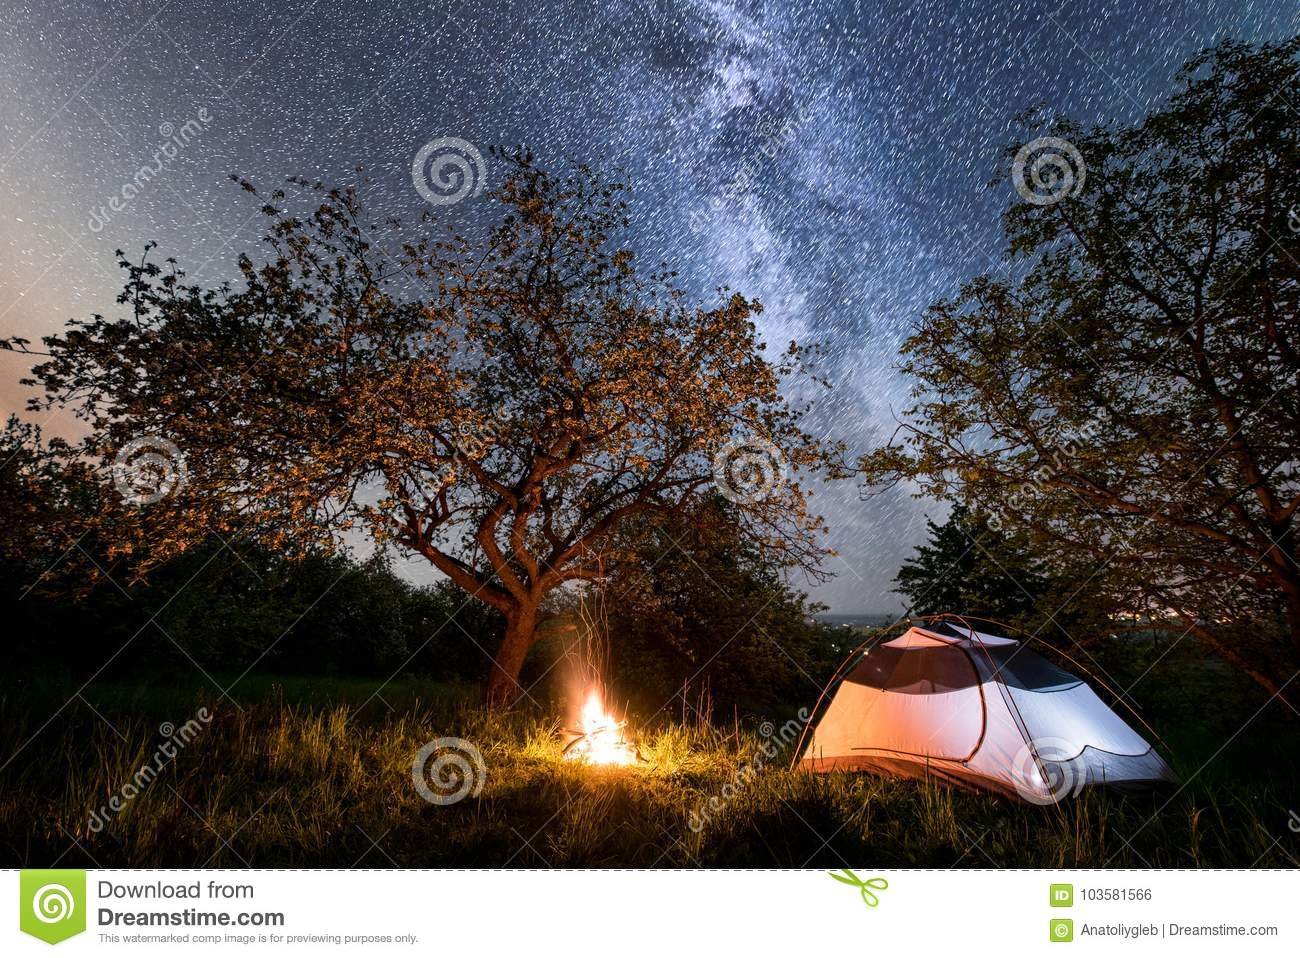 Night camping. tourist tent near campfire under trees and beautiful starry sky and milky way